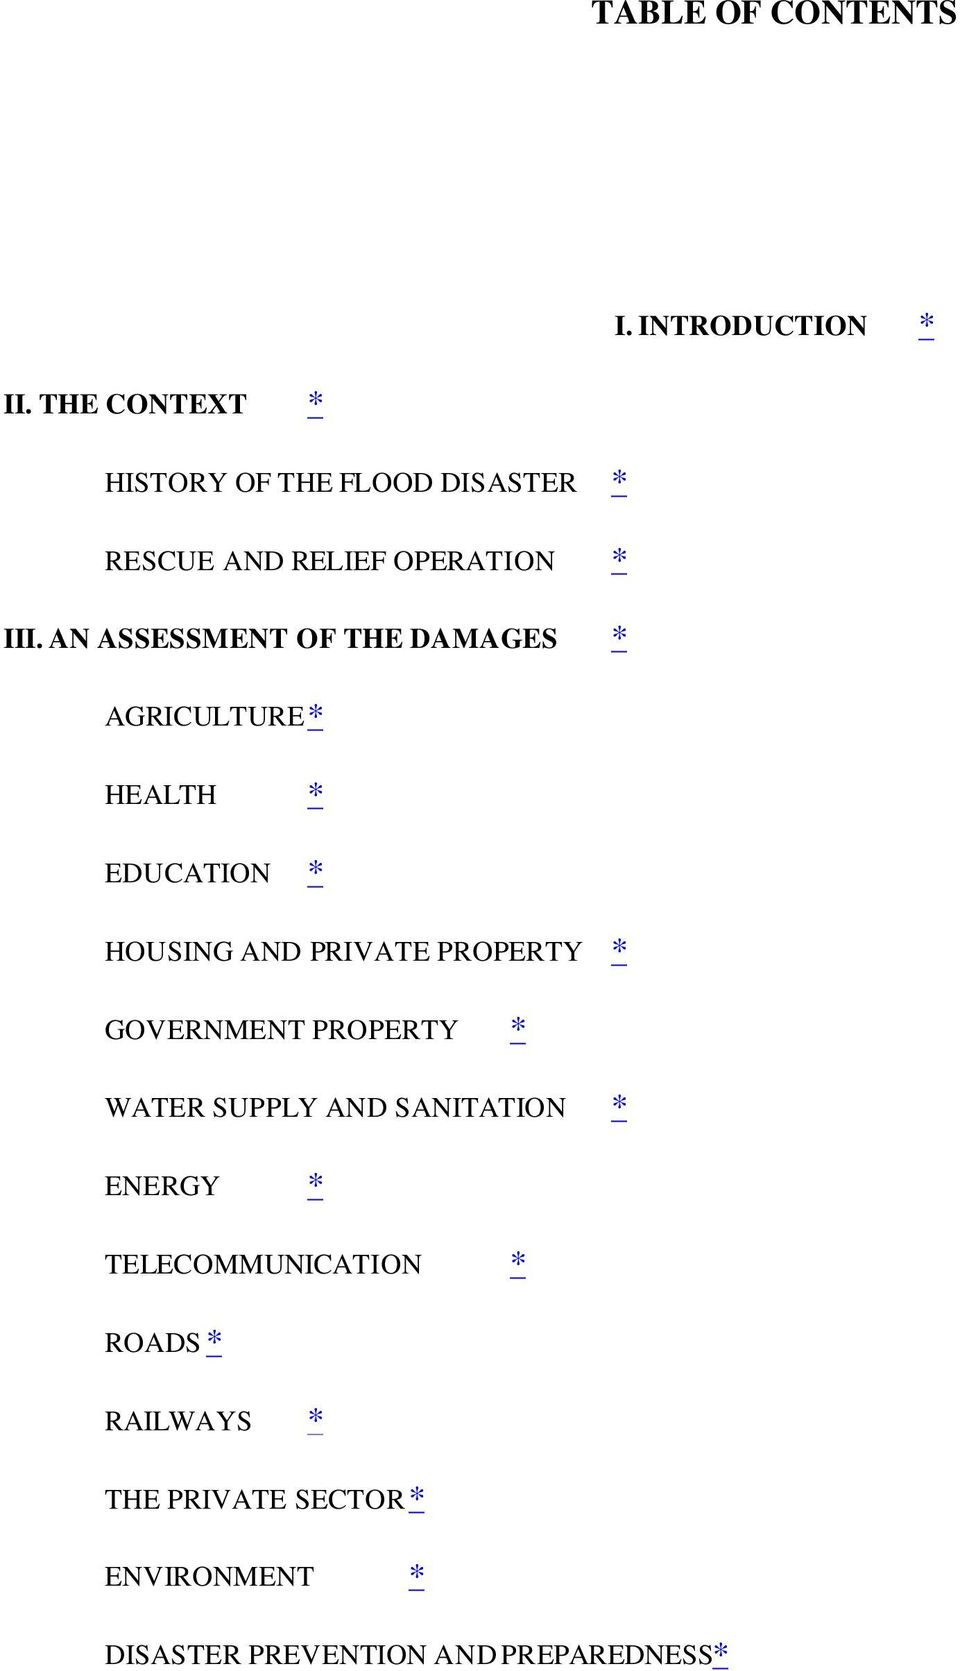 AN ASSESSMENT OF THE DAMAGES * AGRICULTURE * HEALTH * EDUCATION * HOUSING AND PRIVATE PROPERTY *